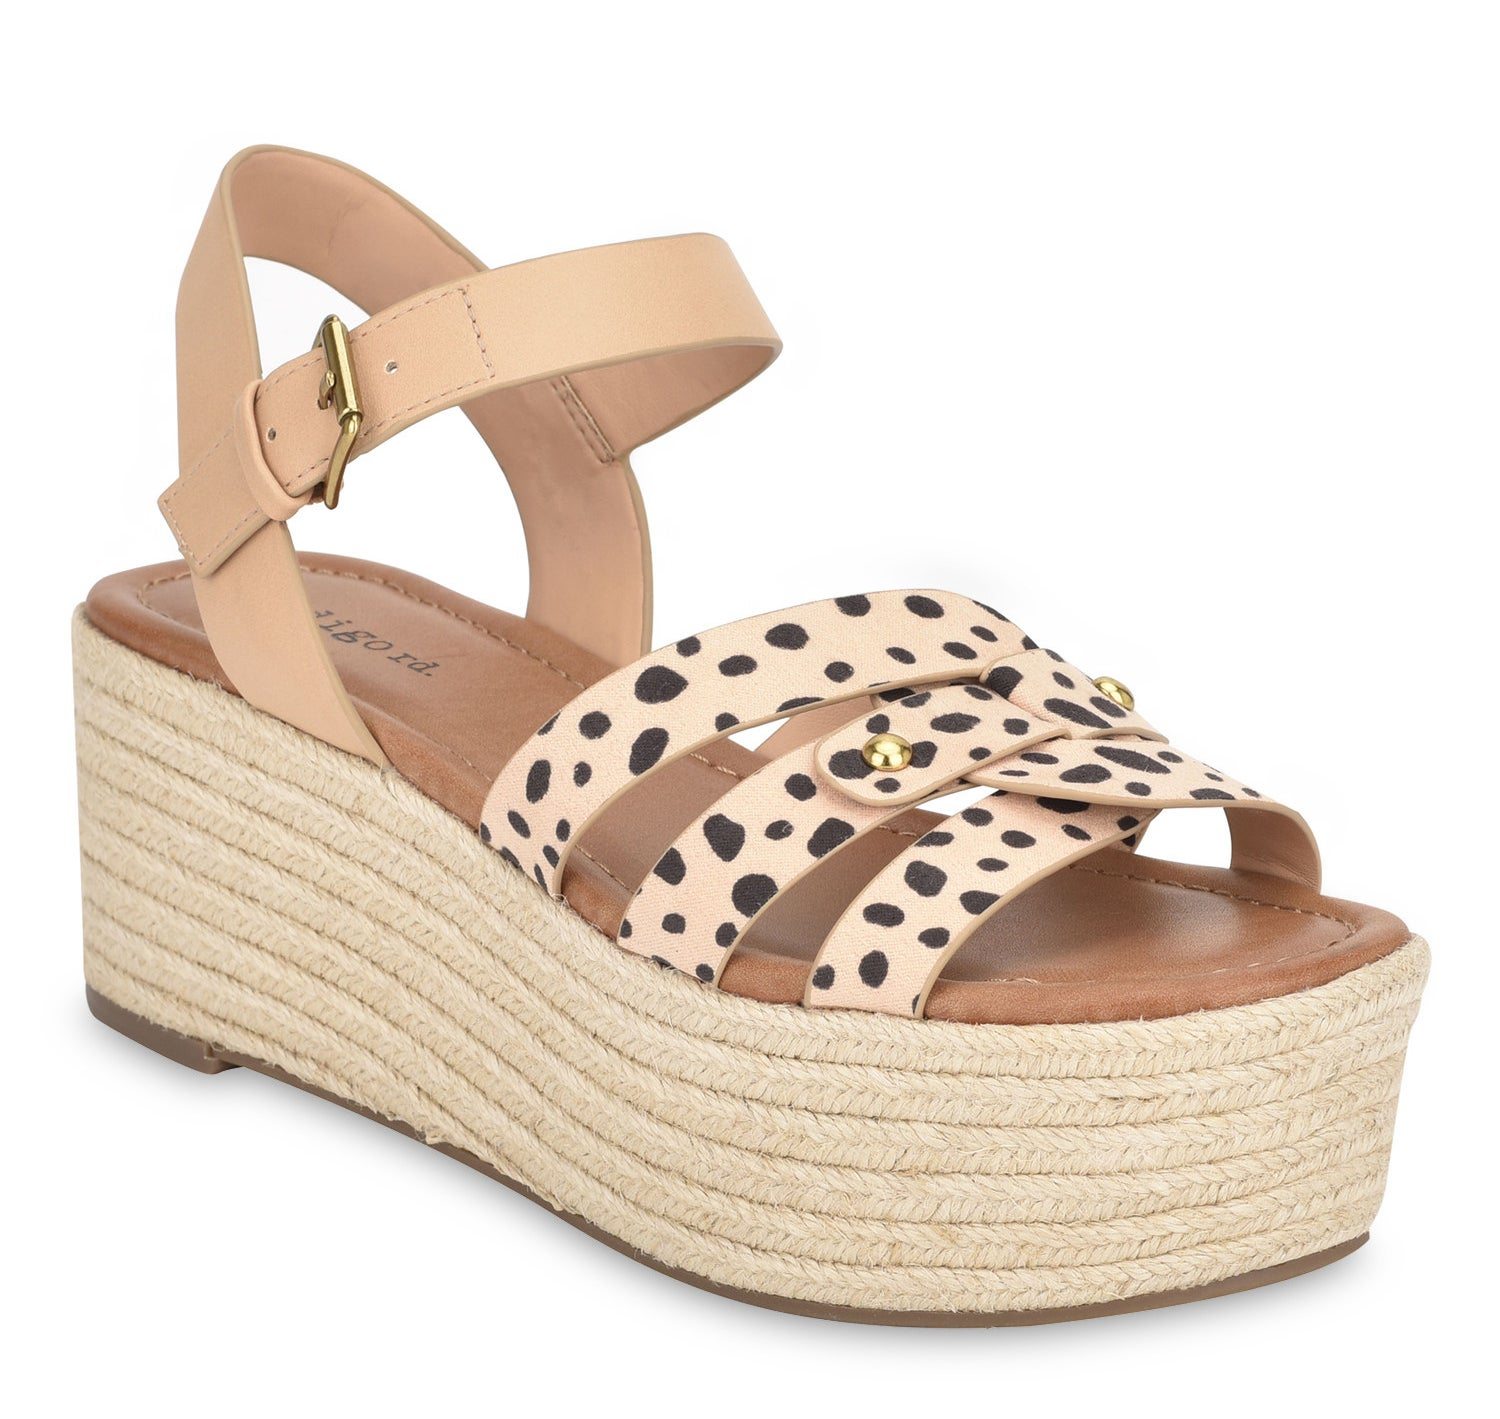 A natural multi-colored platform strappy sandal